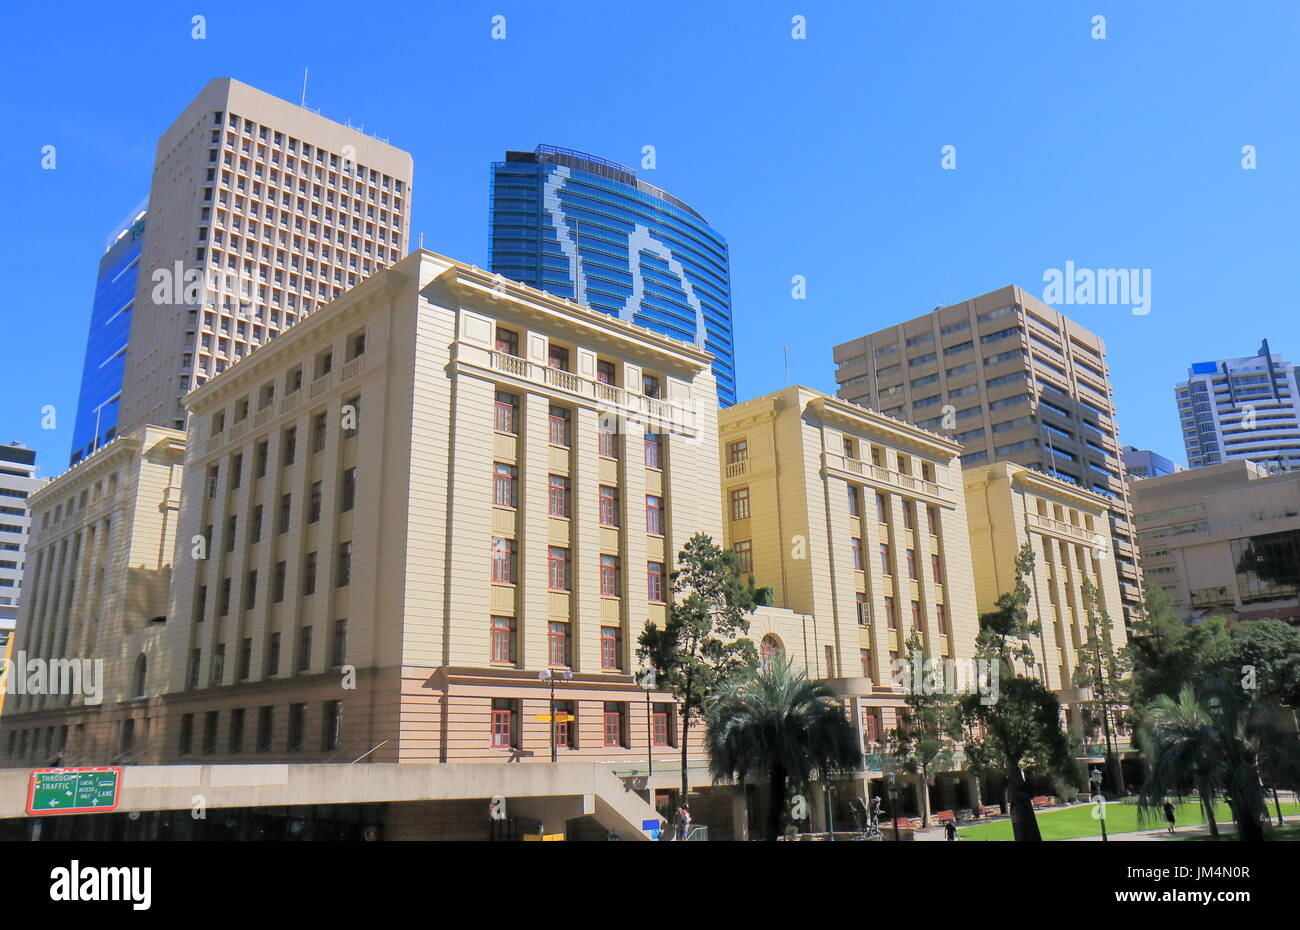 Historical architecture at Post Office Square in Brisbane Australia - Stock Image